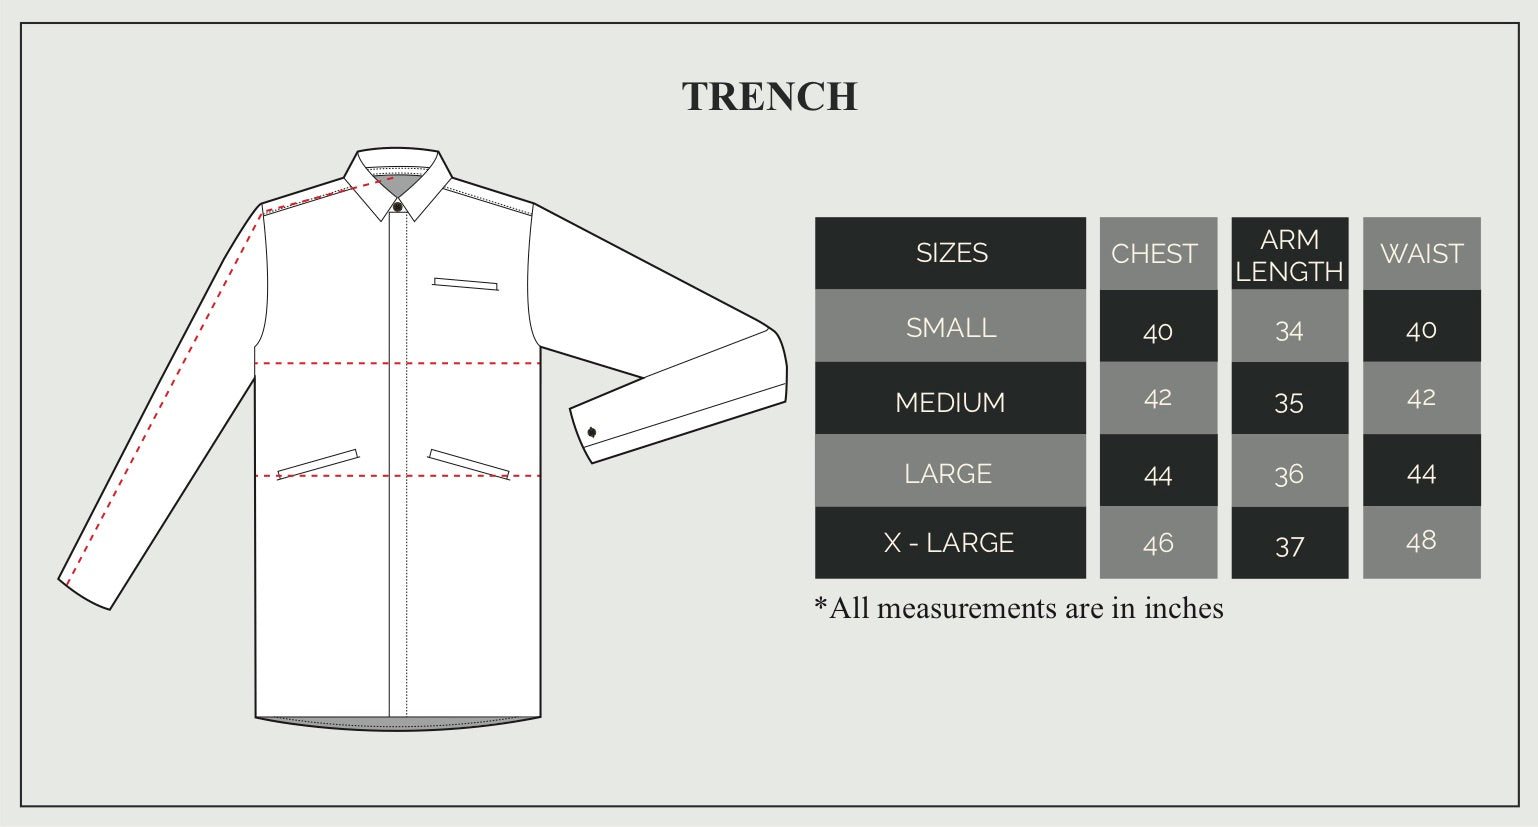 Trench Size Guide